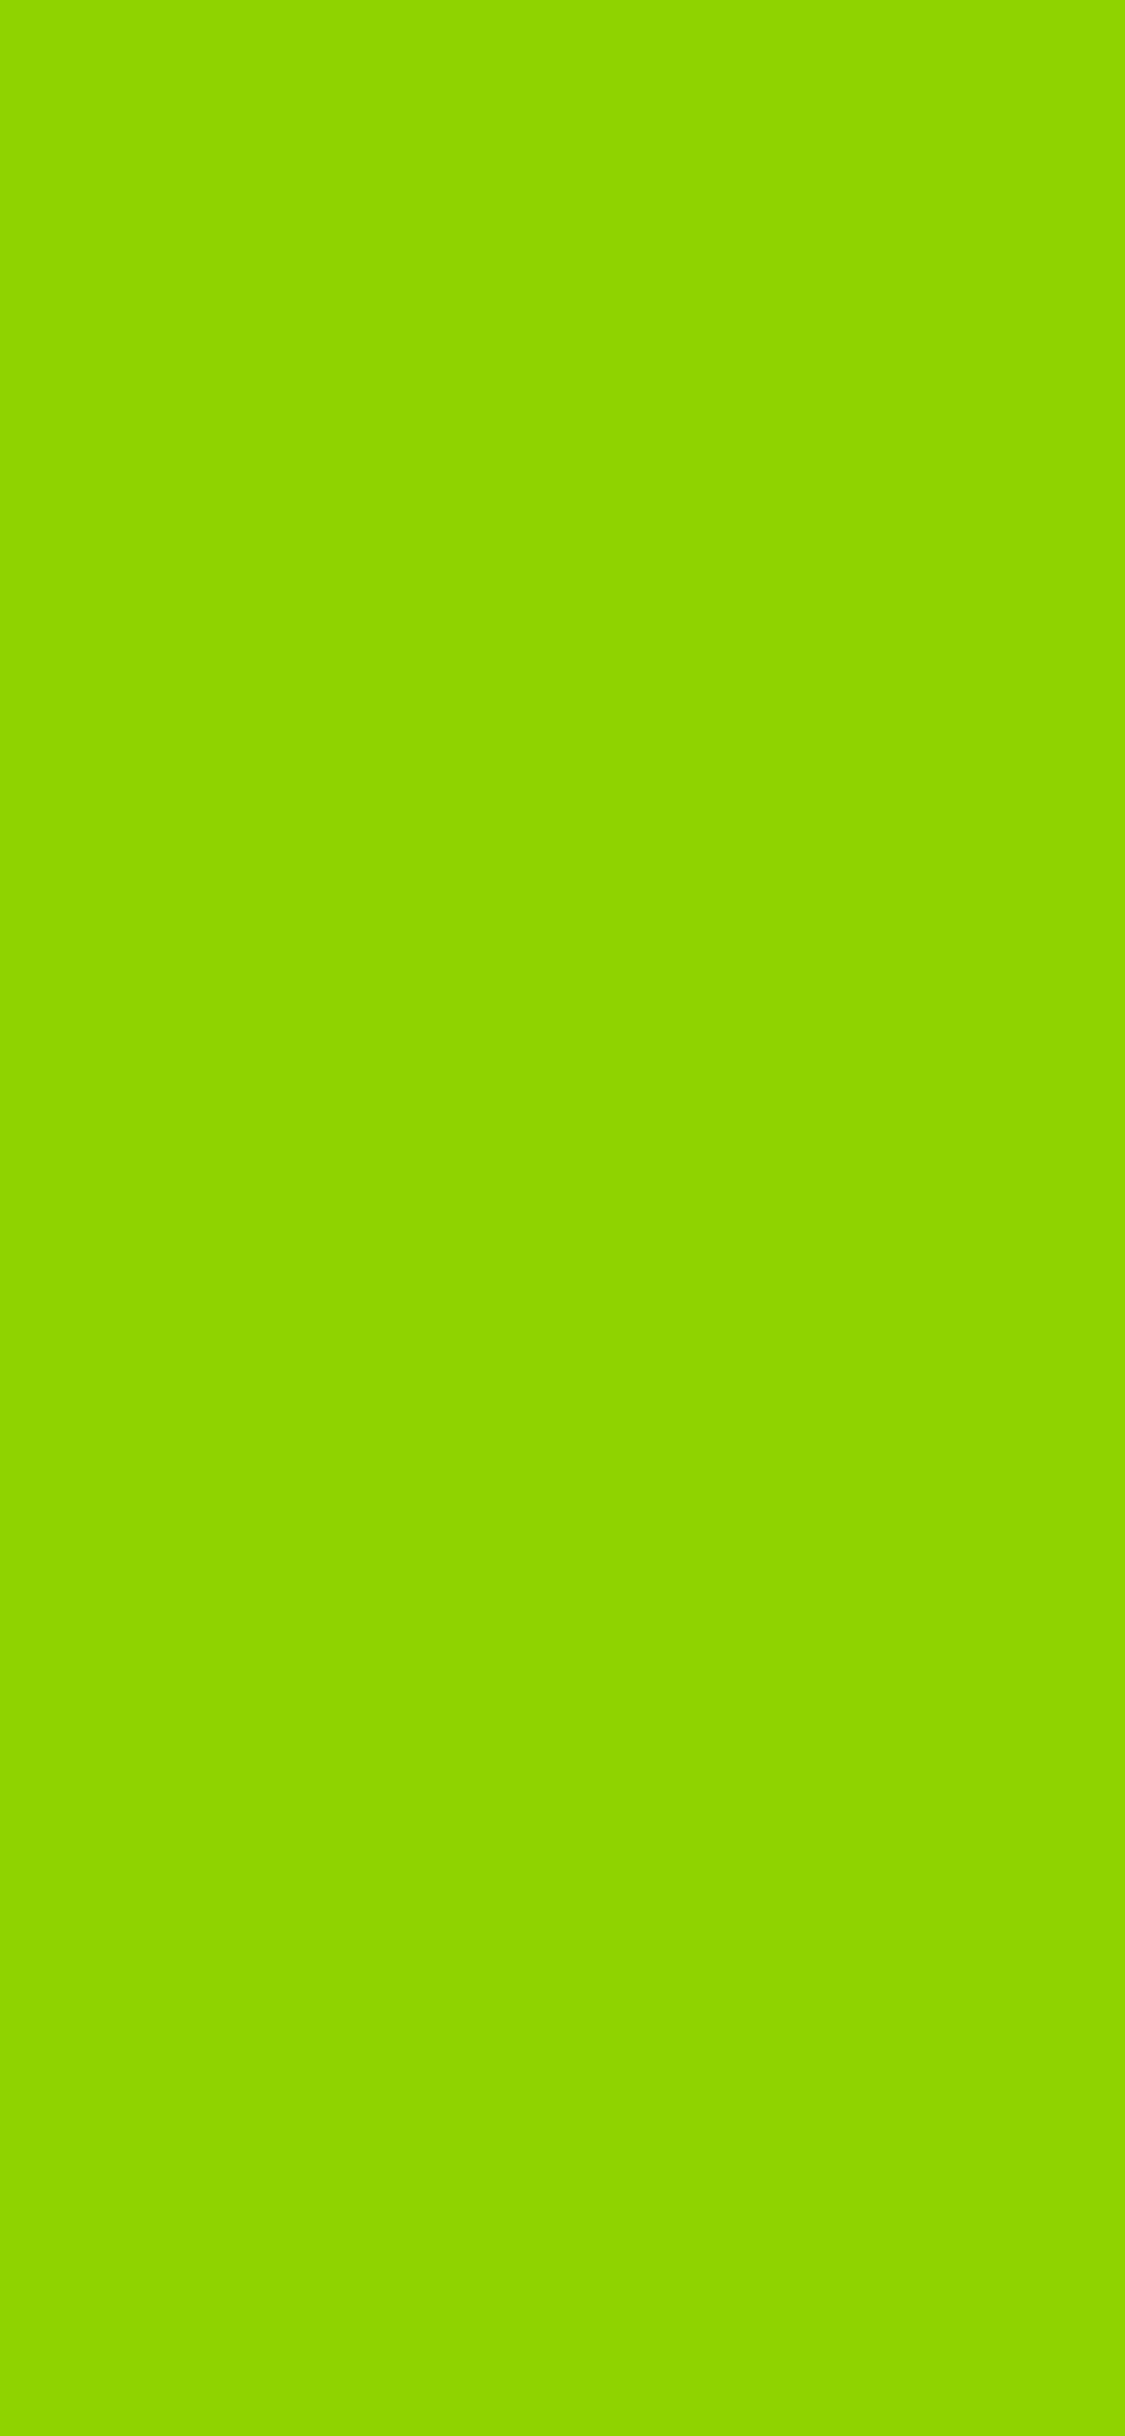 1125x2436 Sheen Green Solid Color Background